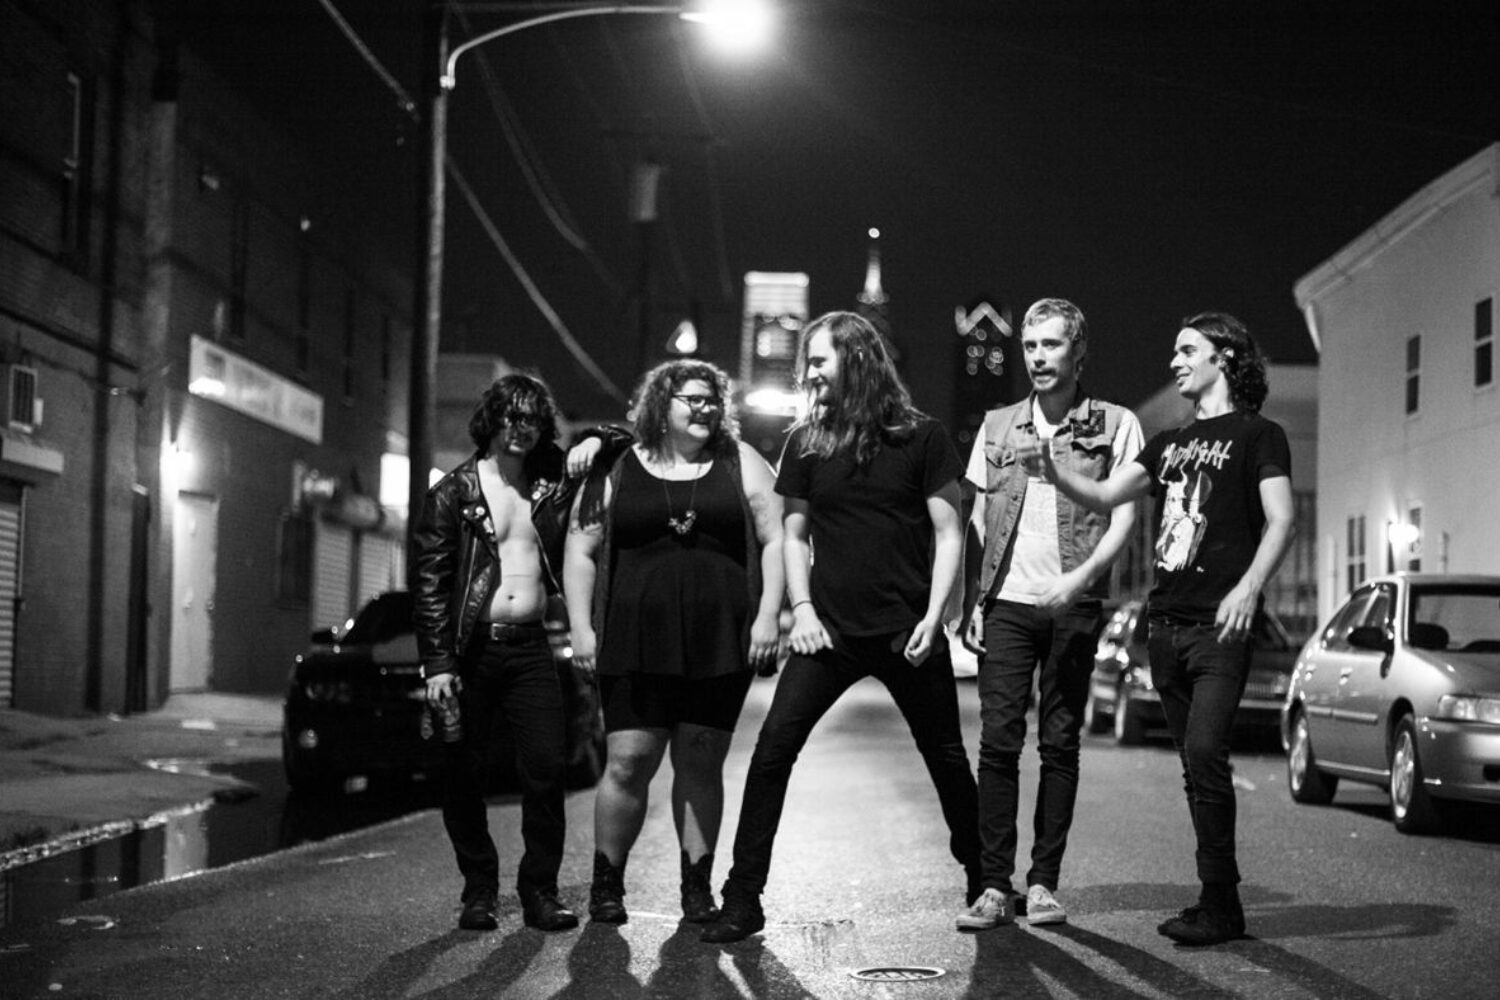 Sheer Mag - Can't Stop Fighting